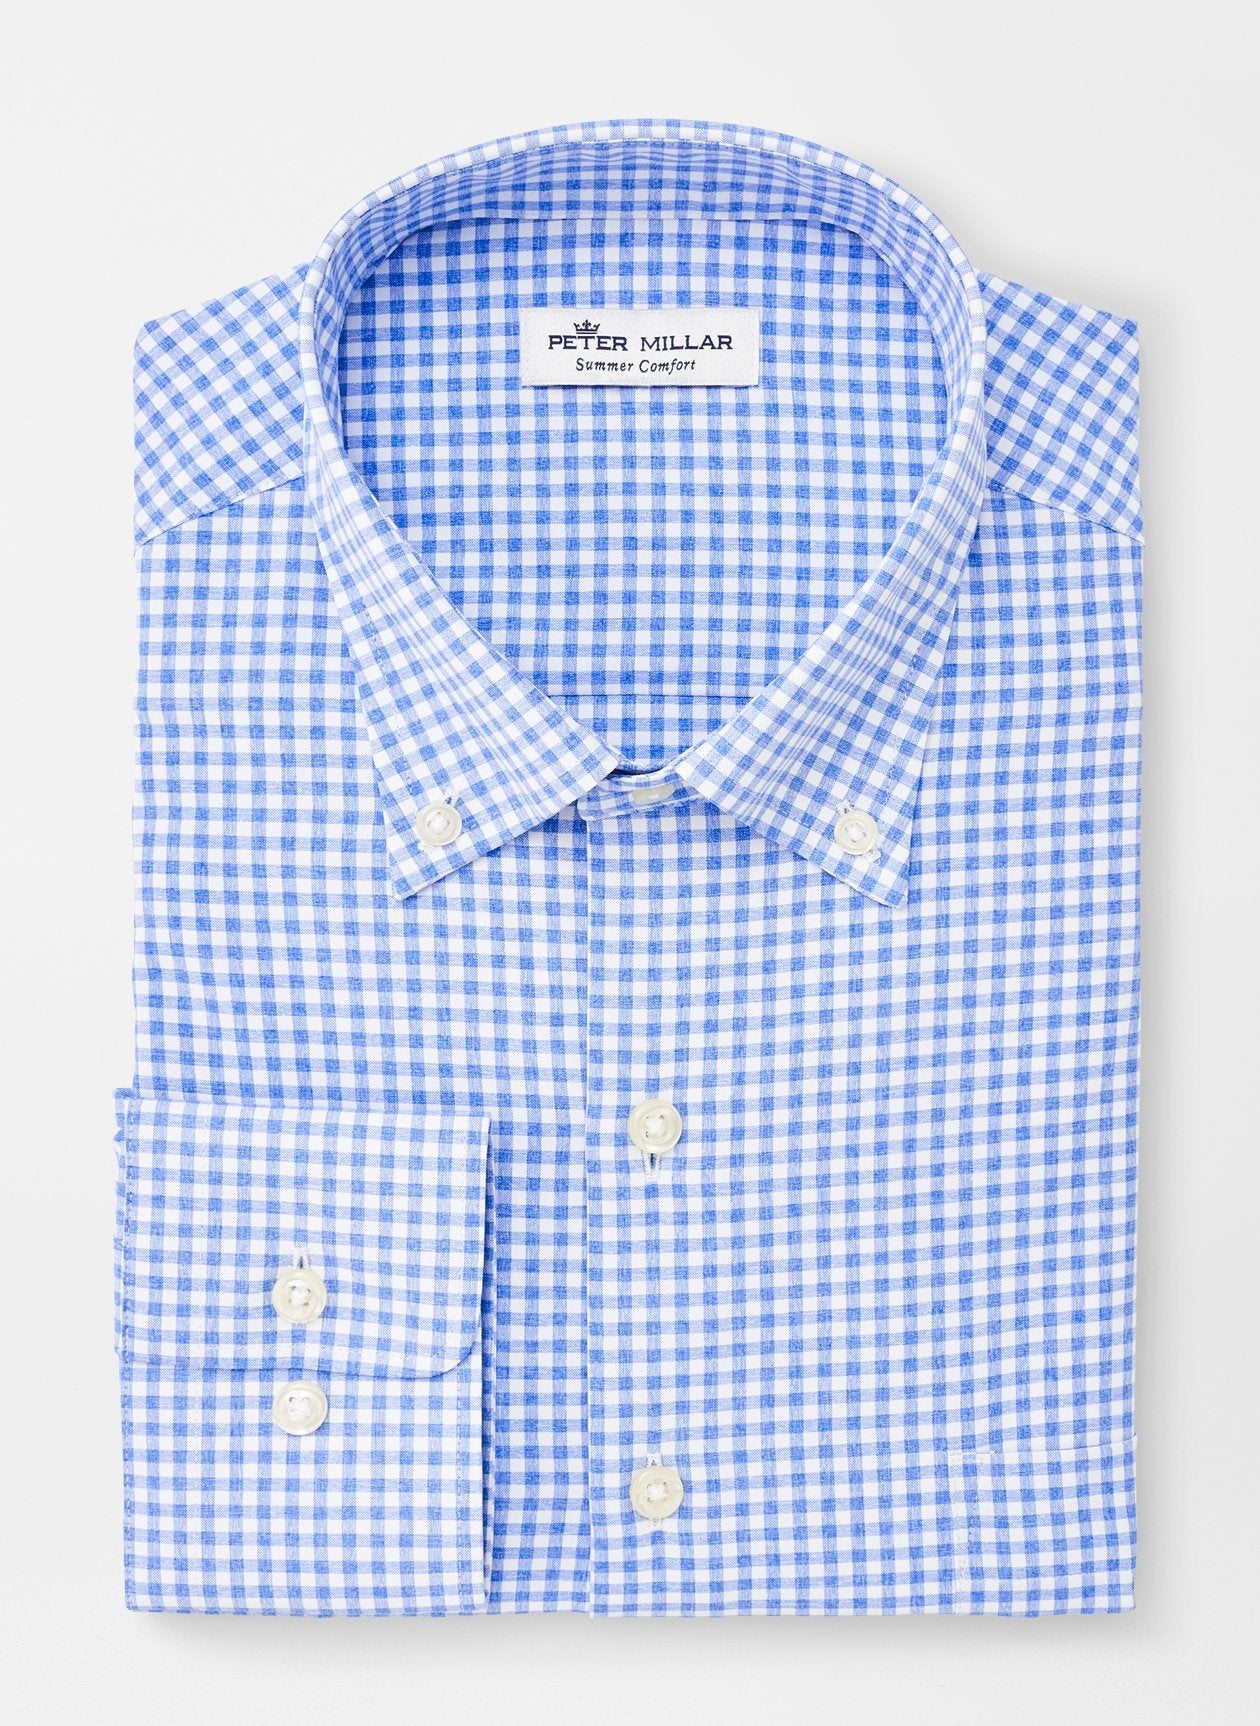 PETER MILLAR Men's Sport Shirt Peter Millar Samuel Natural Touch Sport Shirt || David's Clothing